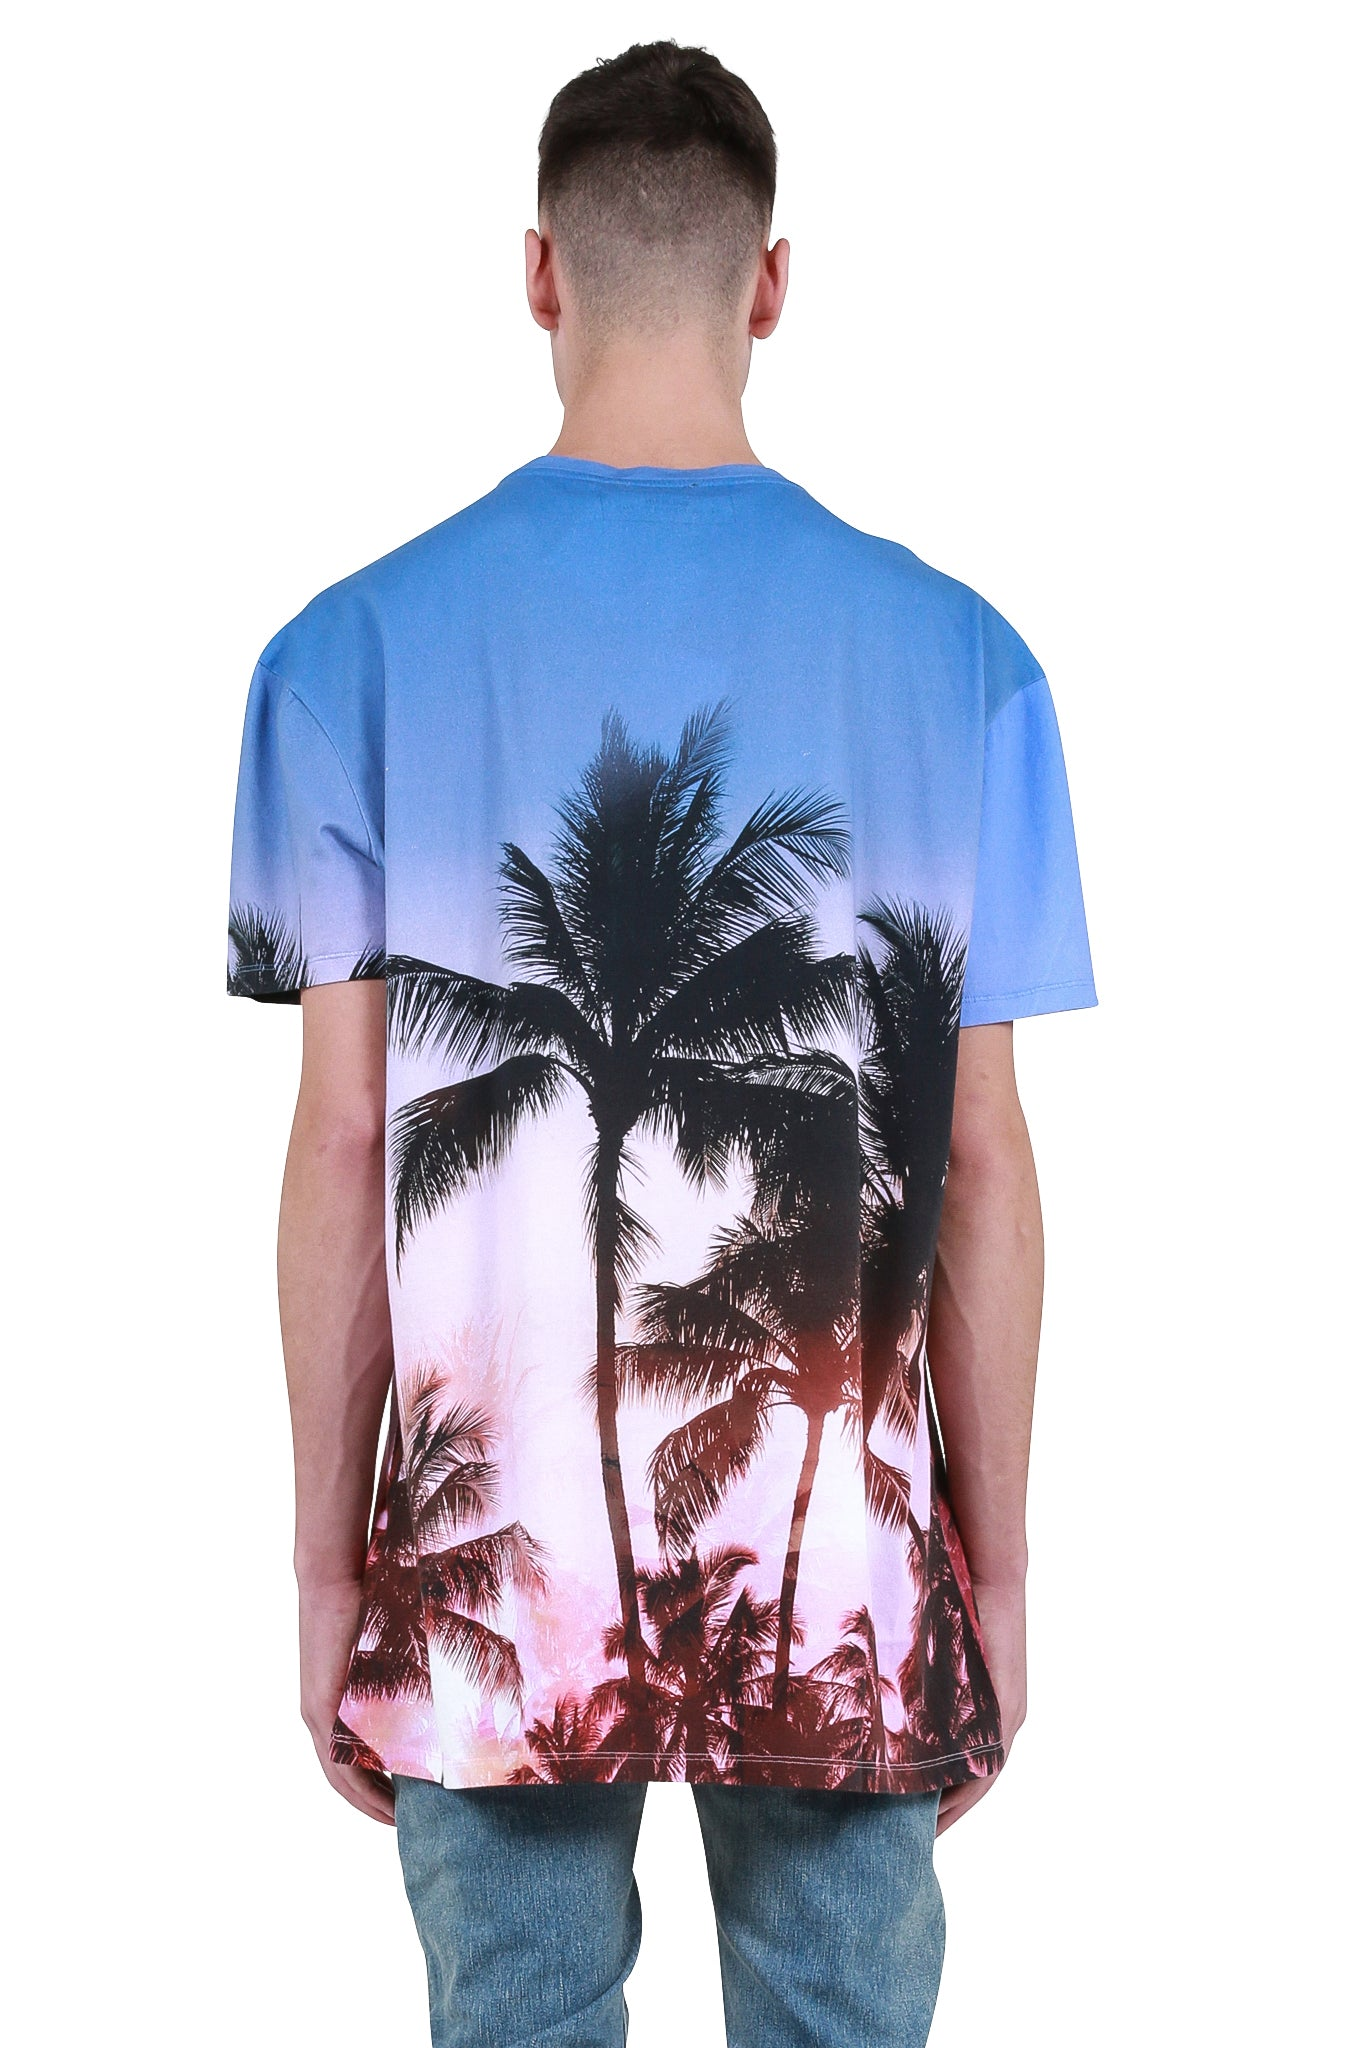 37cfd1be Balmain: Oversized Beach Club Sunset Print T-Shirt - Multicolor ...